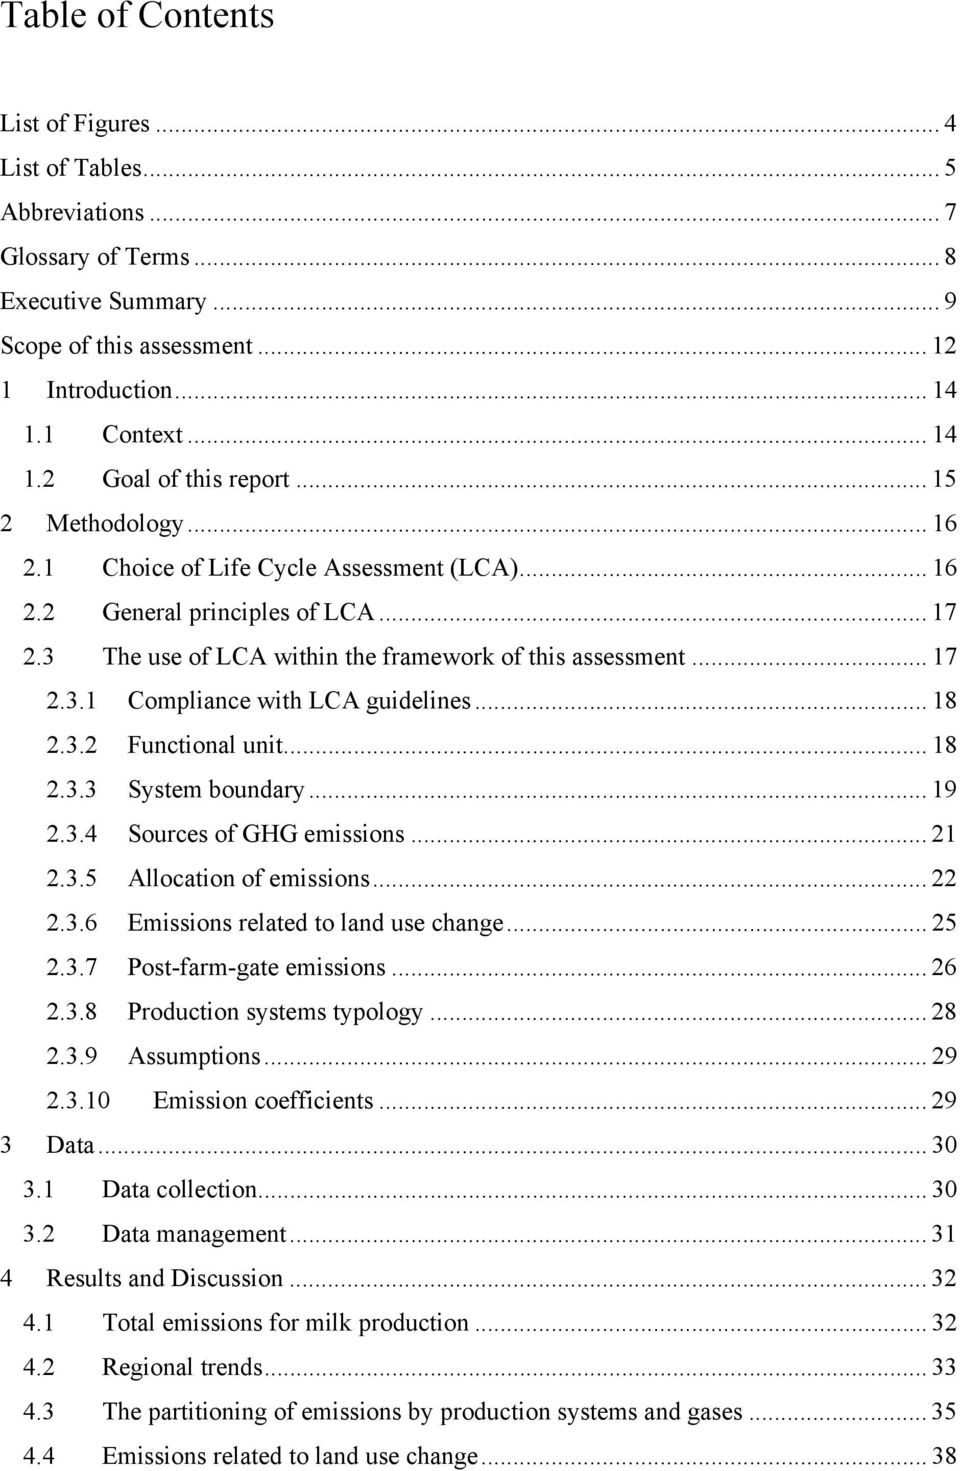 .. 18 2.3.2 Functional unit... 18 2.3.3 System boundary... 19 2.3.4 Sources of GHG emissions... 21 2.3.5 Allocation of emissions... 22 2.3.6 Emissions related to land use change... 25 2.3.7 Post-farm-gate emissions.